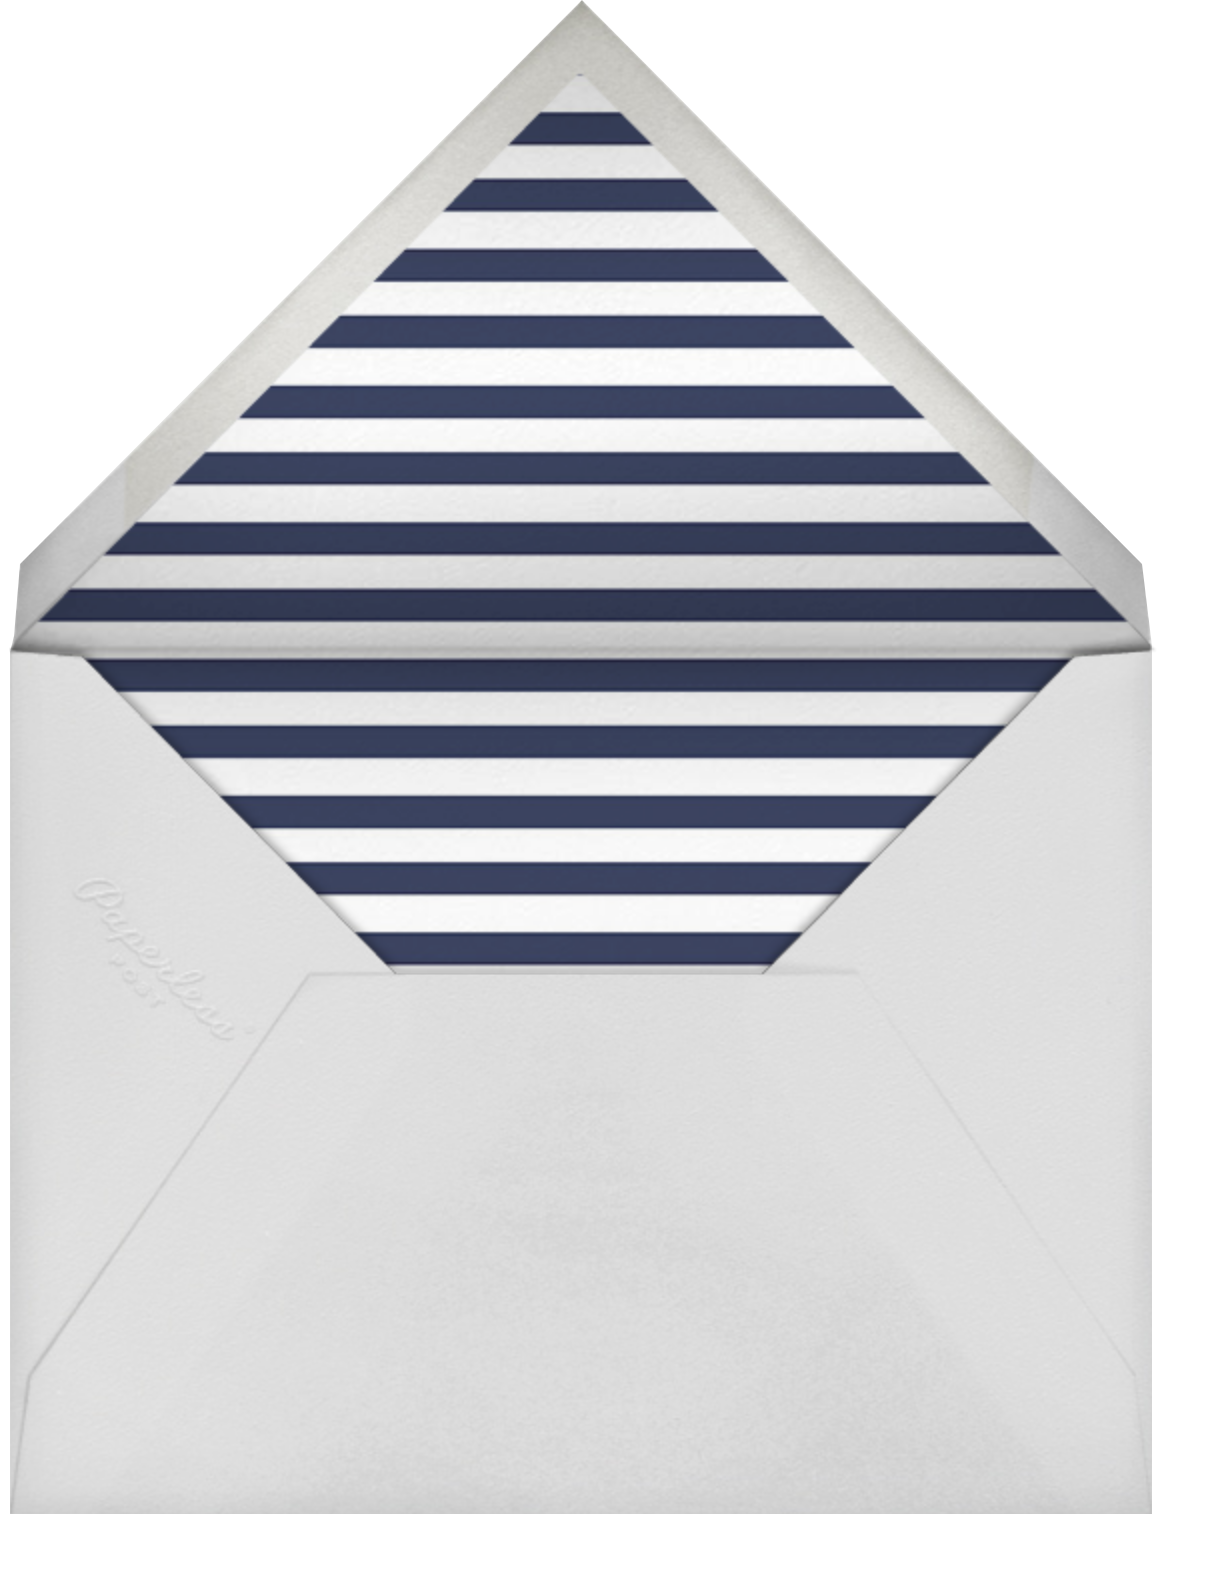 A Golden Date - White/Navy - kate spade new york - Party save the dates - envelope back